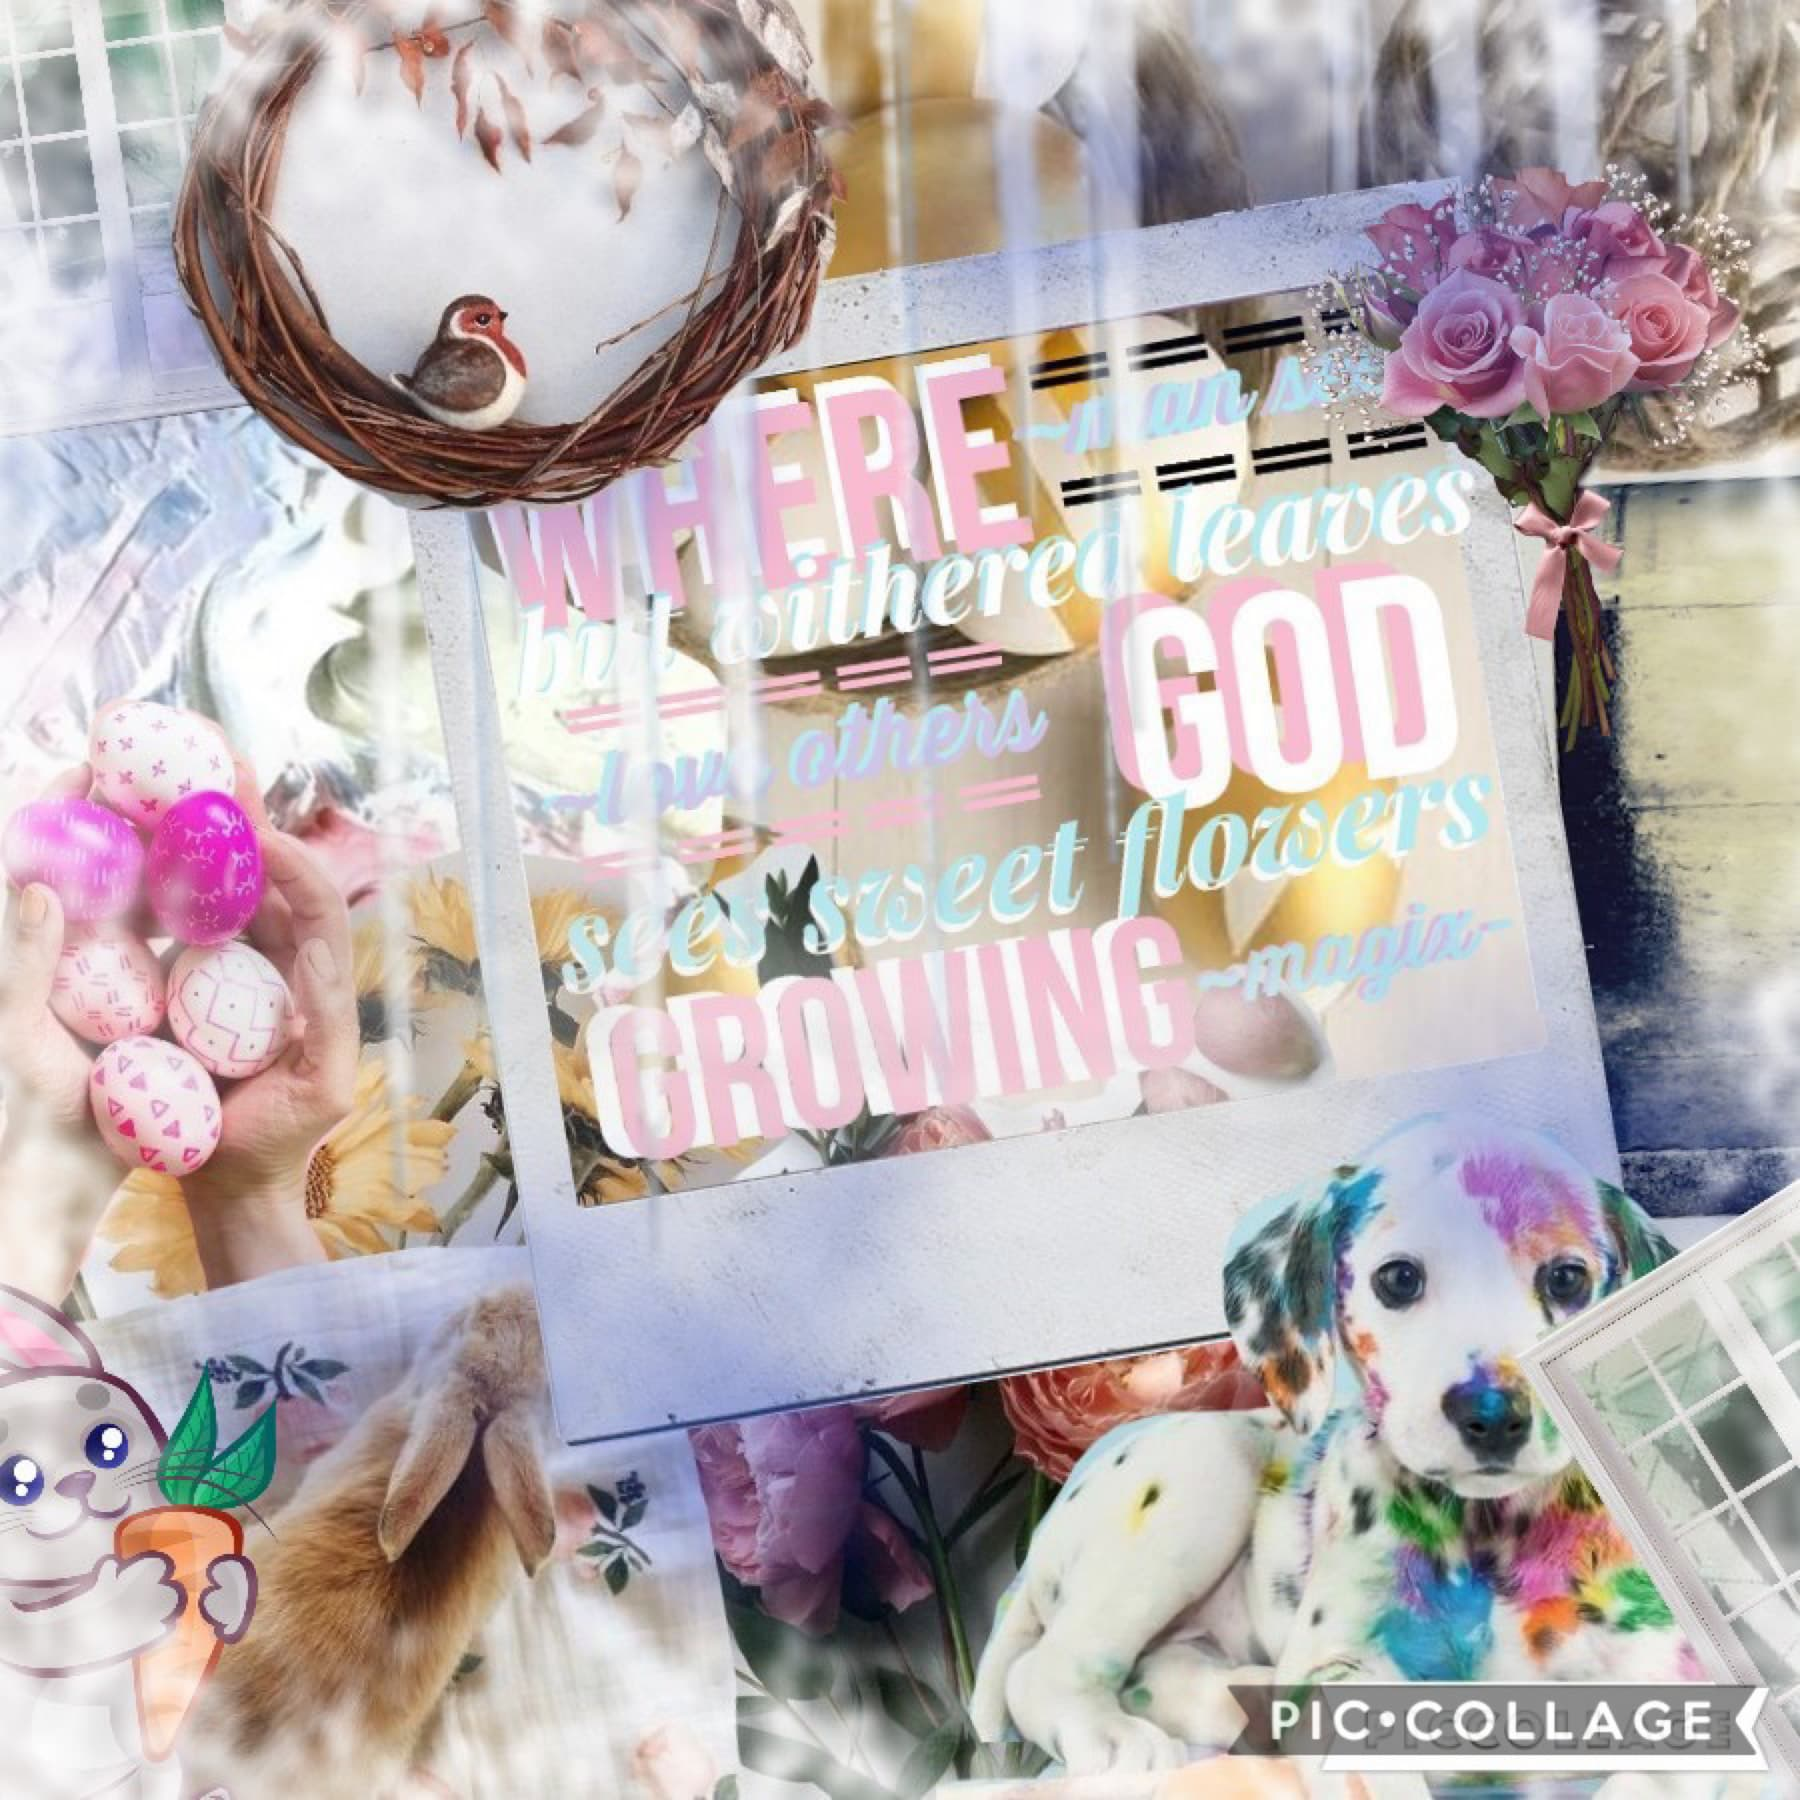 Woo hii this is so bad but whatever um very late Easter post happy Easter and Earth day and ANZAC day luv u guys 25.04 I am crazy woo I'm with my friend -NEON_L1FE- and we're having a blast woo 😂🙈👍📖🎥👙💕📲💩💩🥰🍟🤤🍔❤️😅🐵🐵😆🤞🥳😉😉📱😢👻🙊🙉🎶⌚️🔌👋🥳🤦♀️